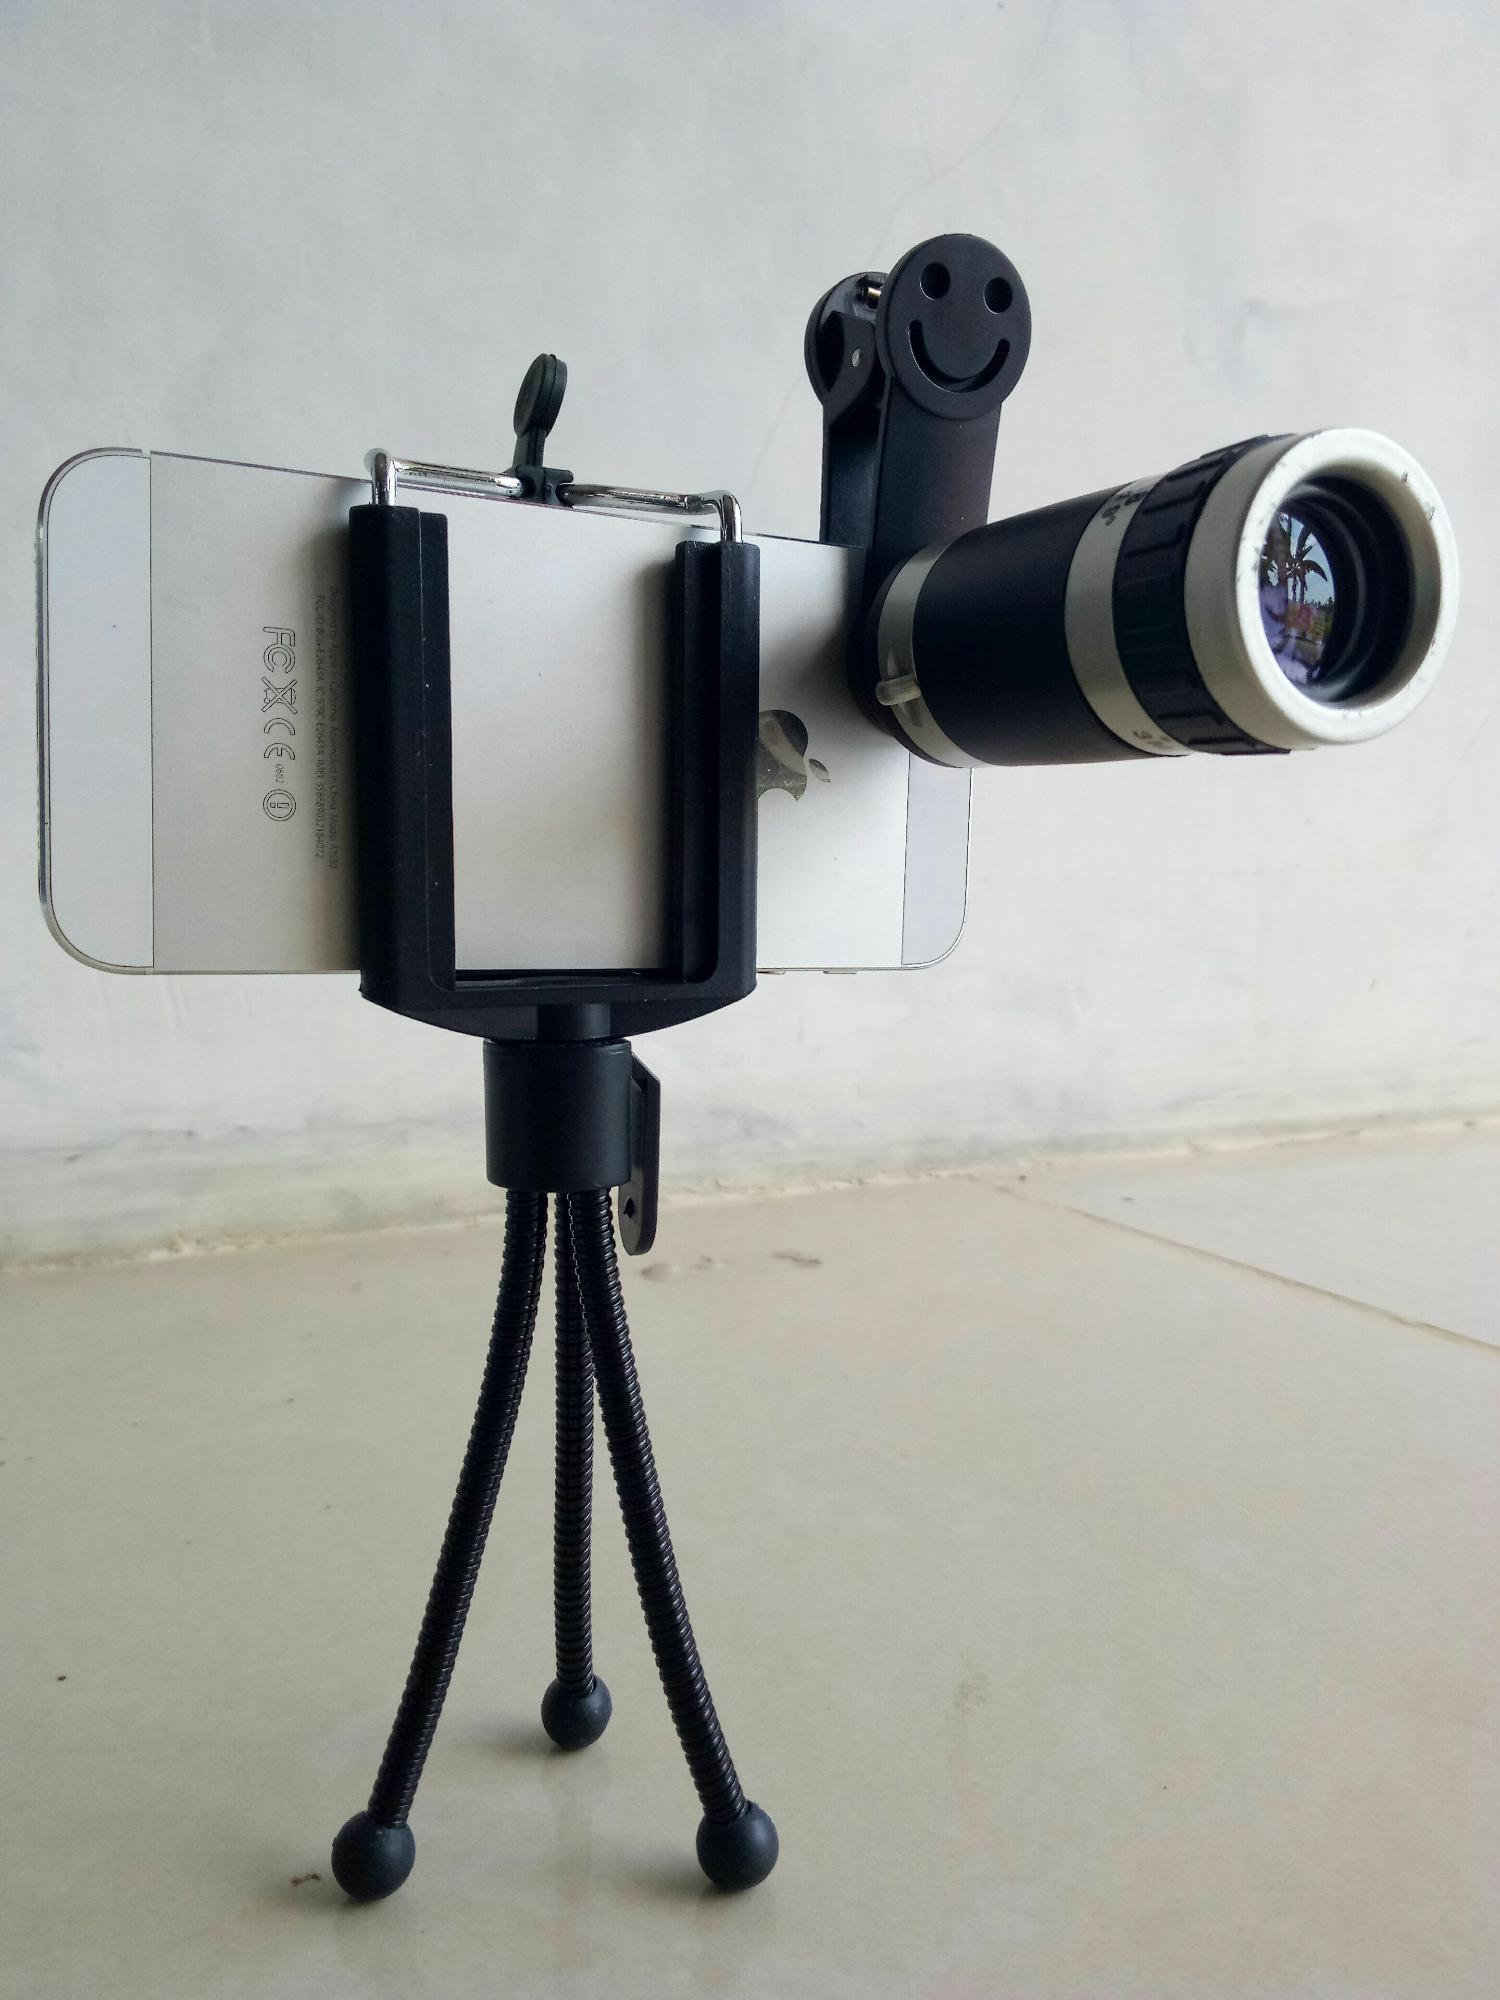 Lensa Telezoom HP Smartphone / Lens Kamera Tele Zoom / Camera Telescope / Scope Android Iphone / Zom 8X / Telezom 8 X - Free Holder + Tripod